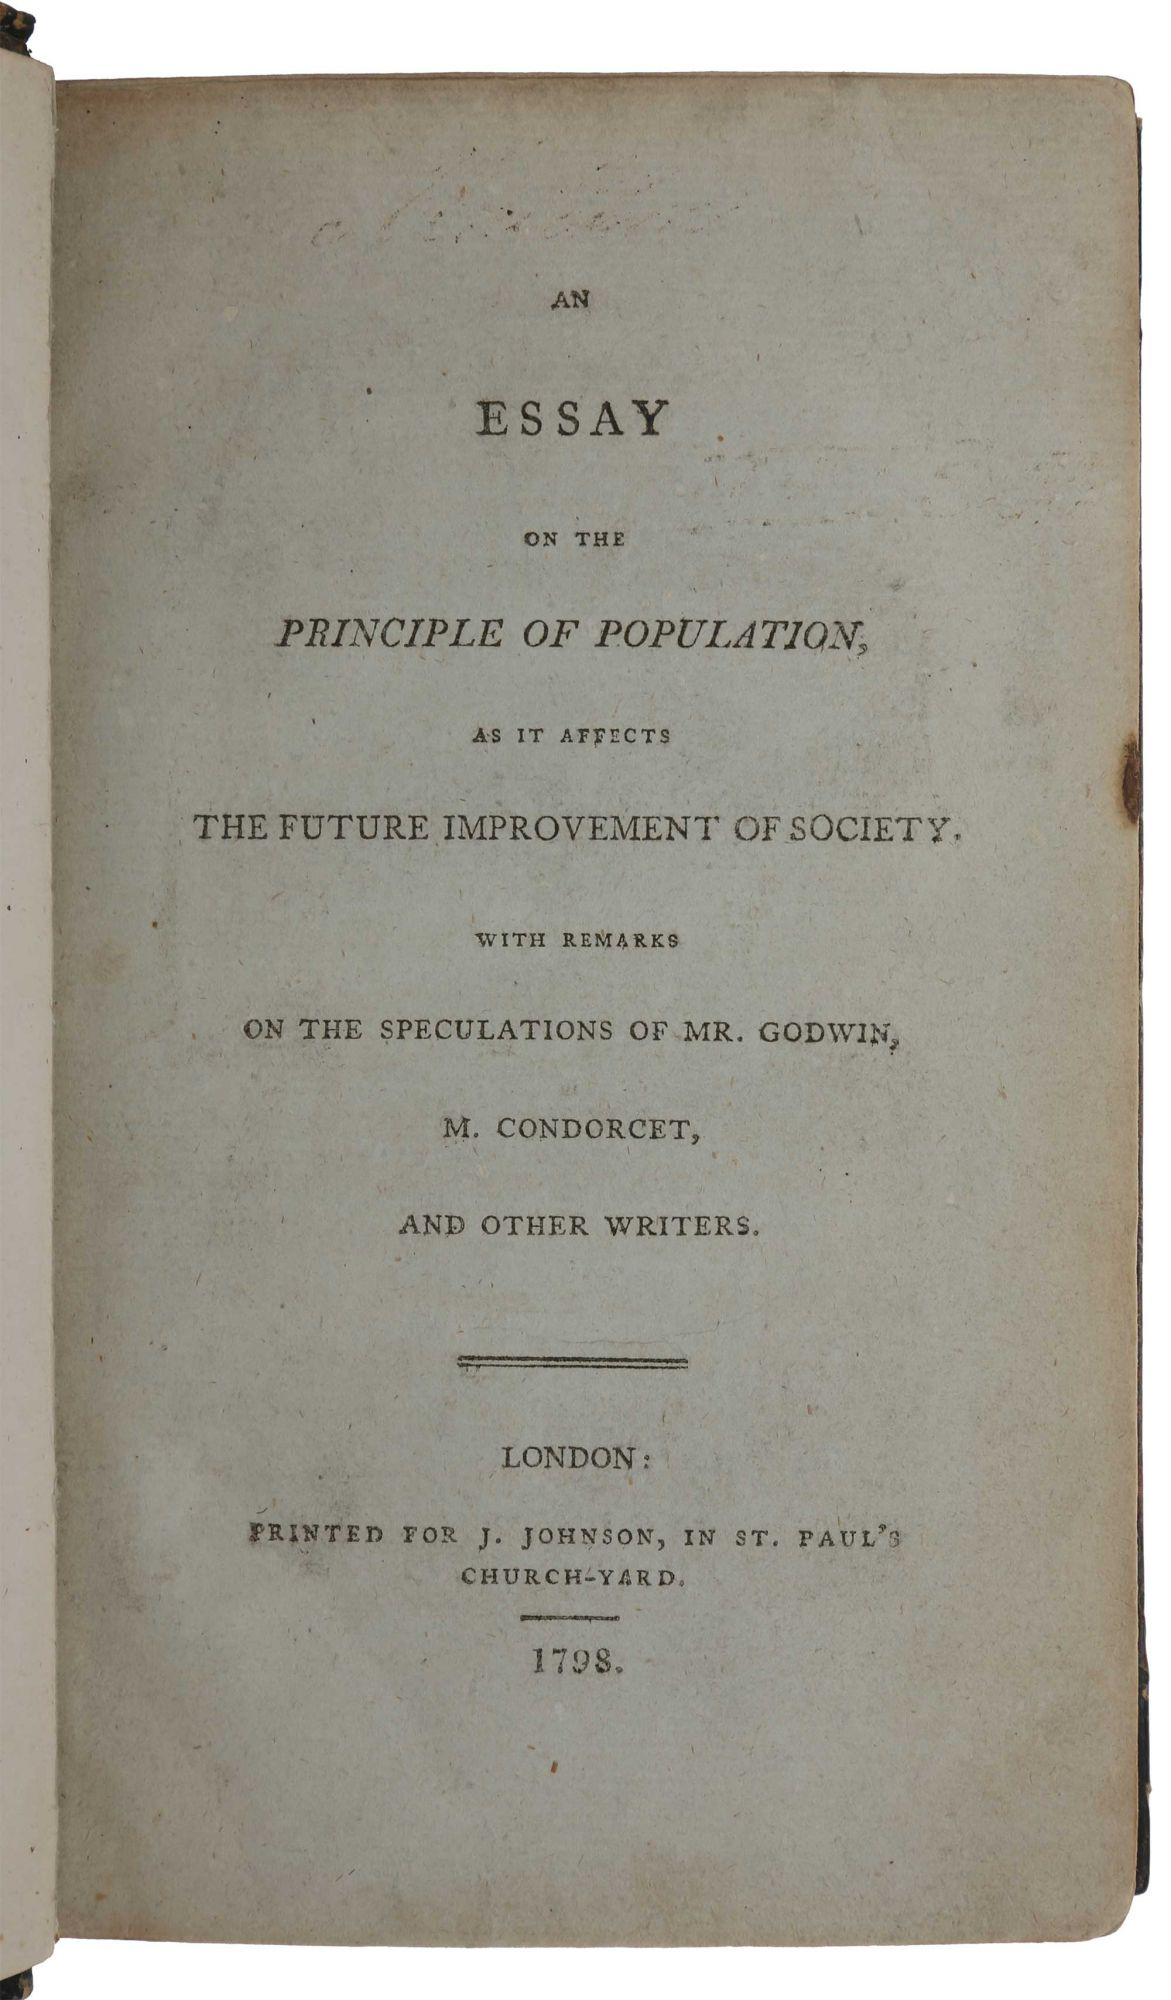 first essay on population by thomas malthus in the modern history sourcebook